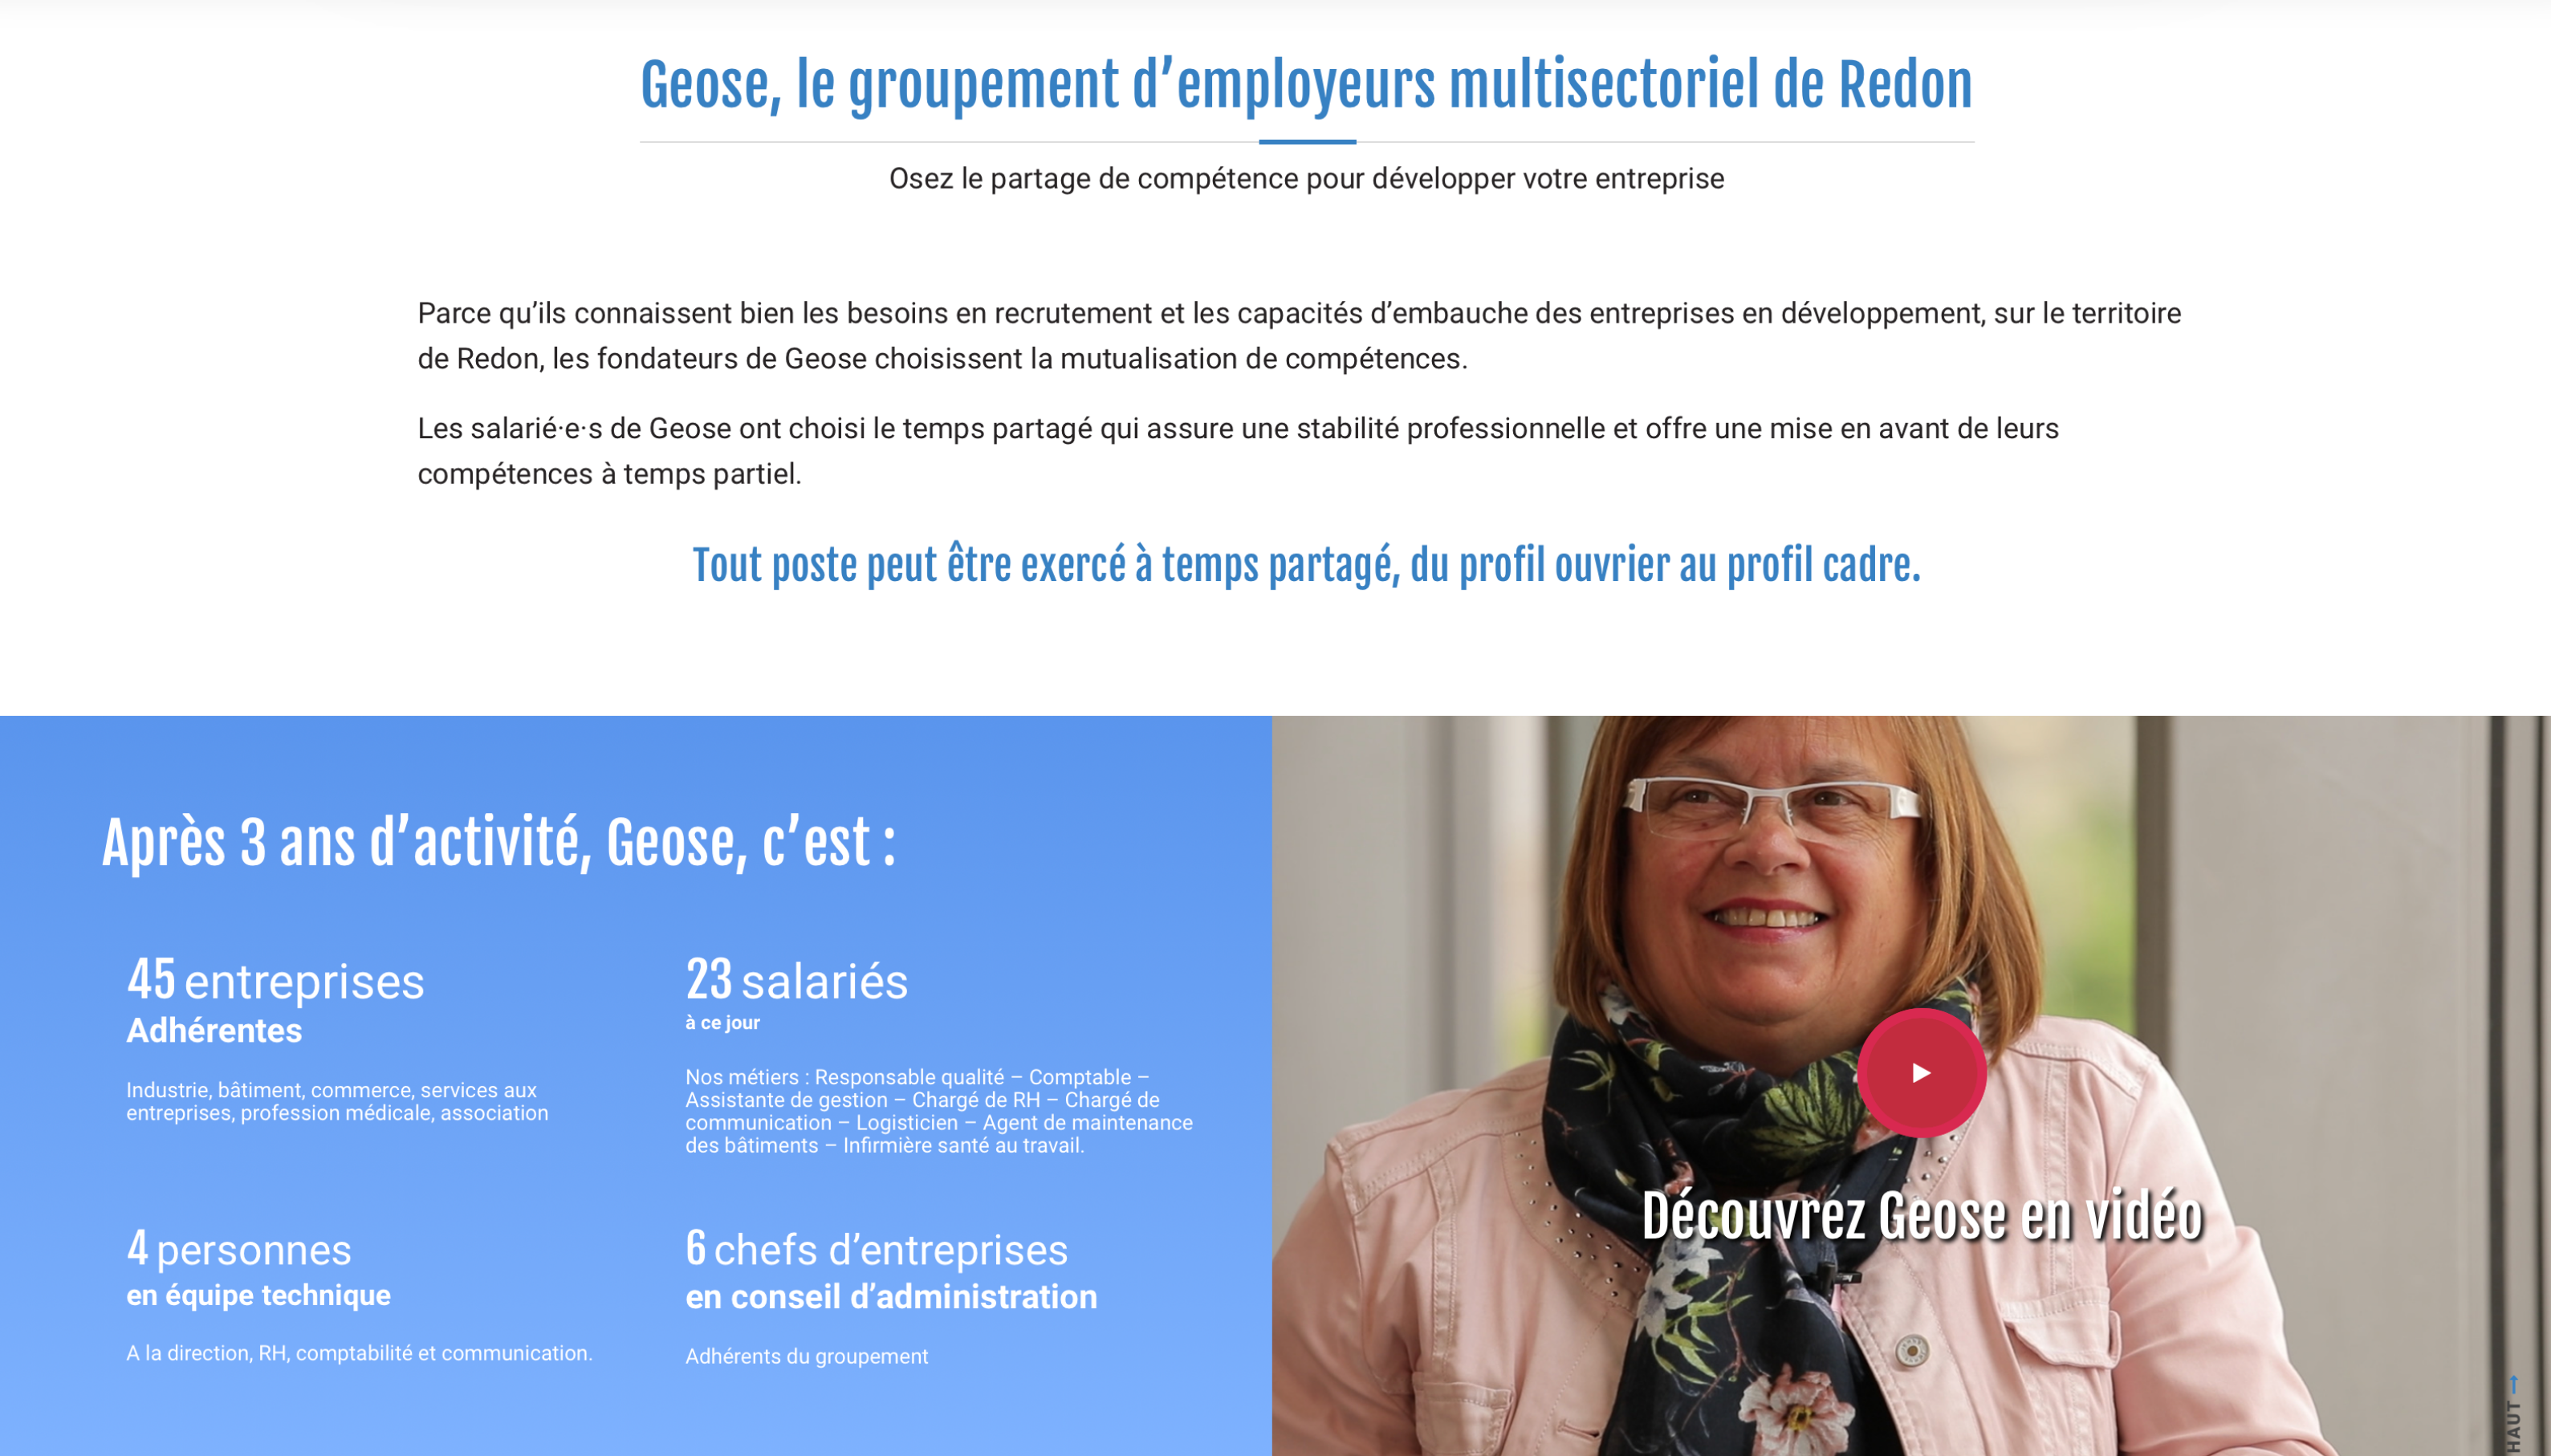 GEOSE PAGE A PROPOS